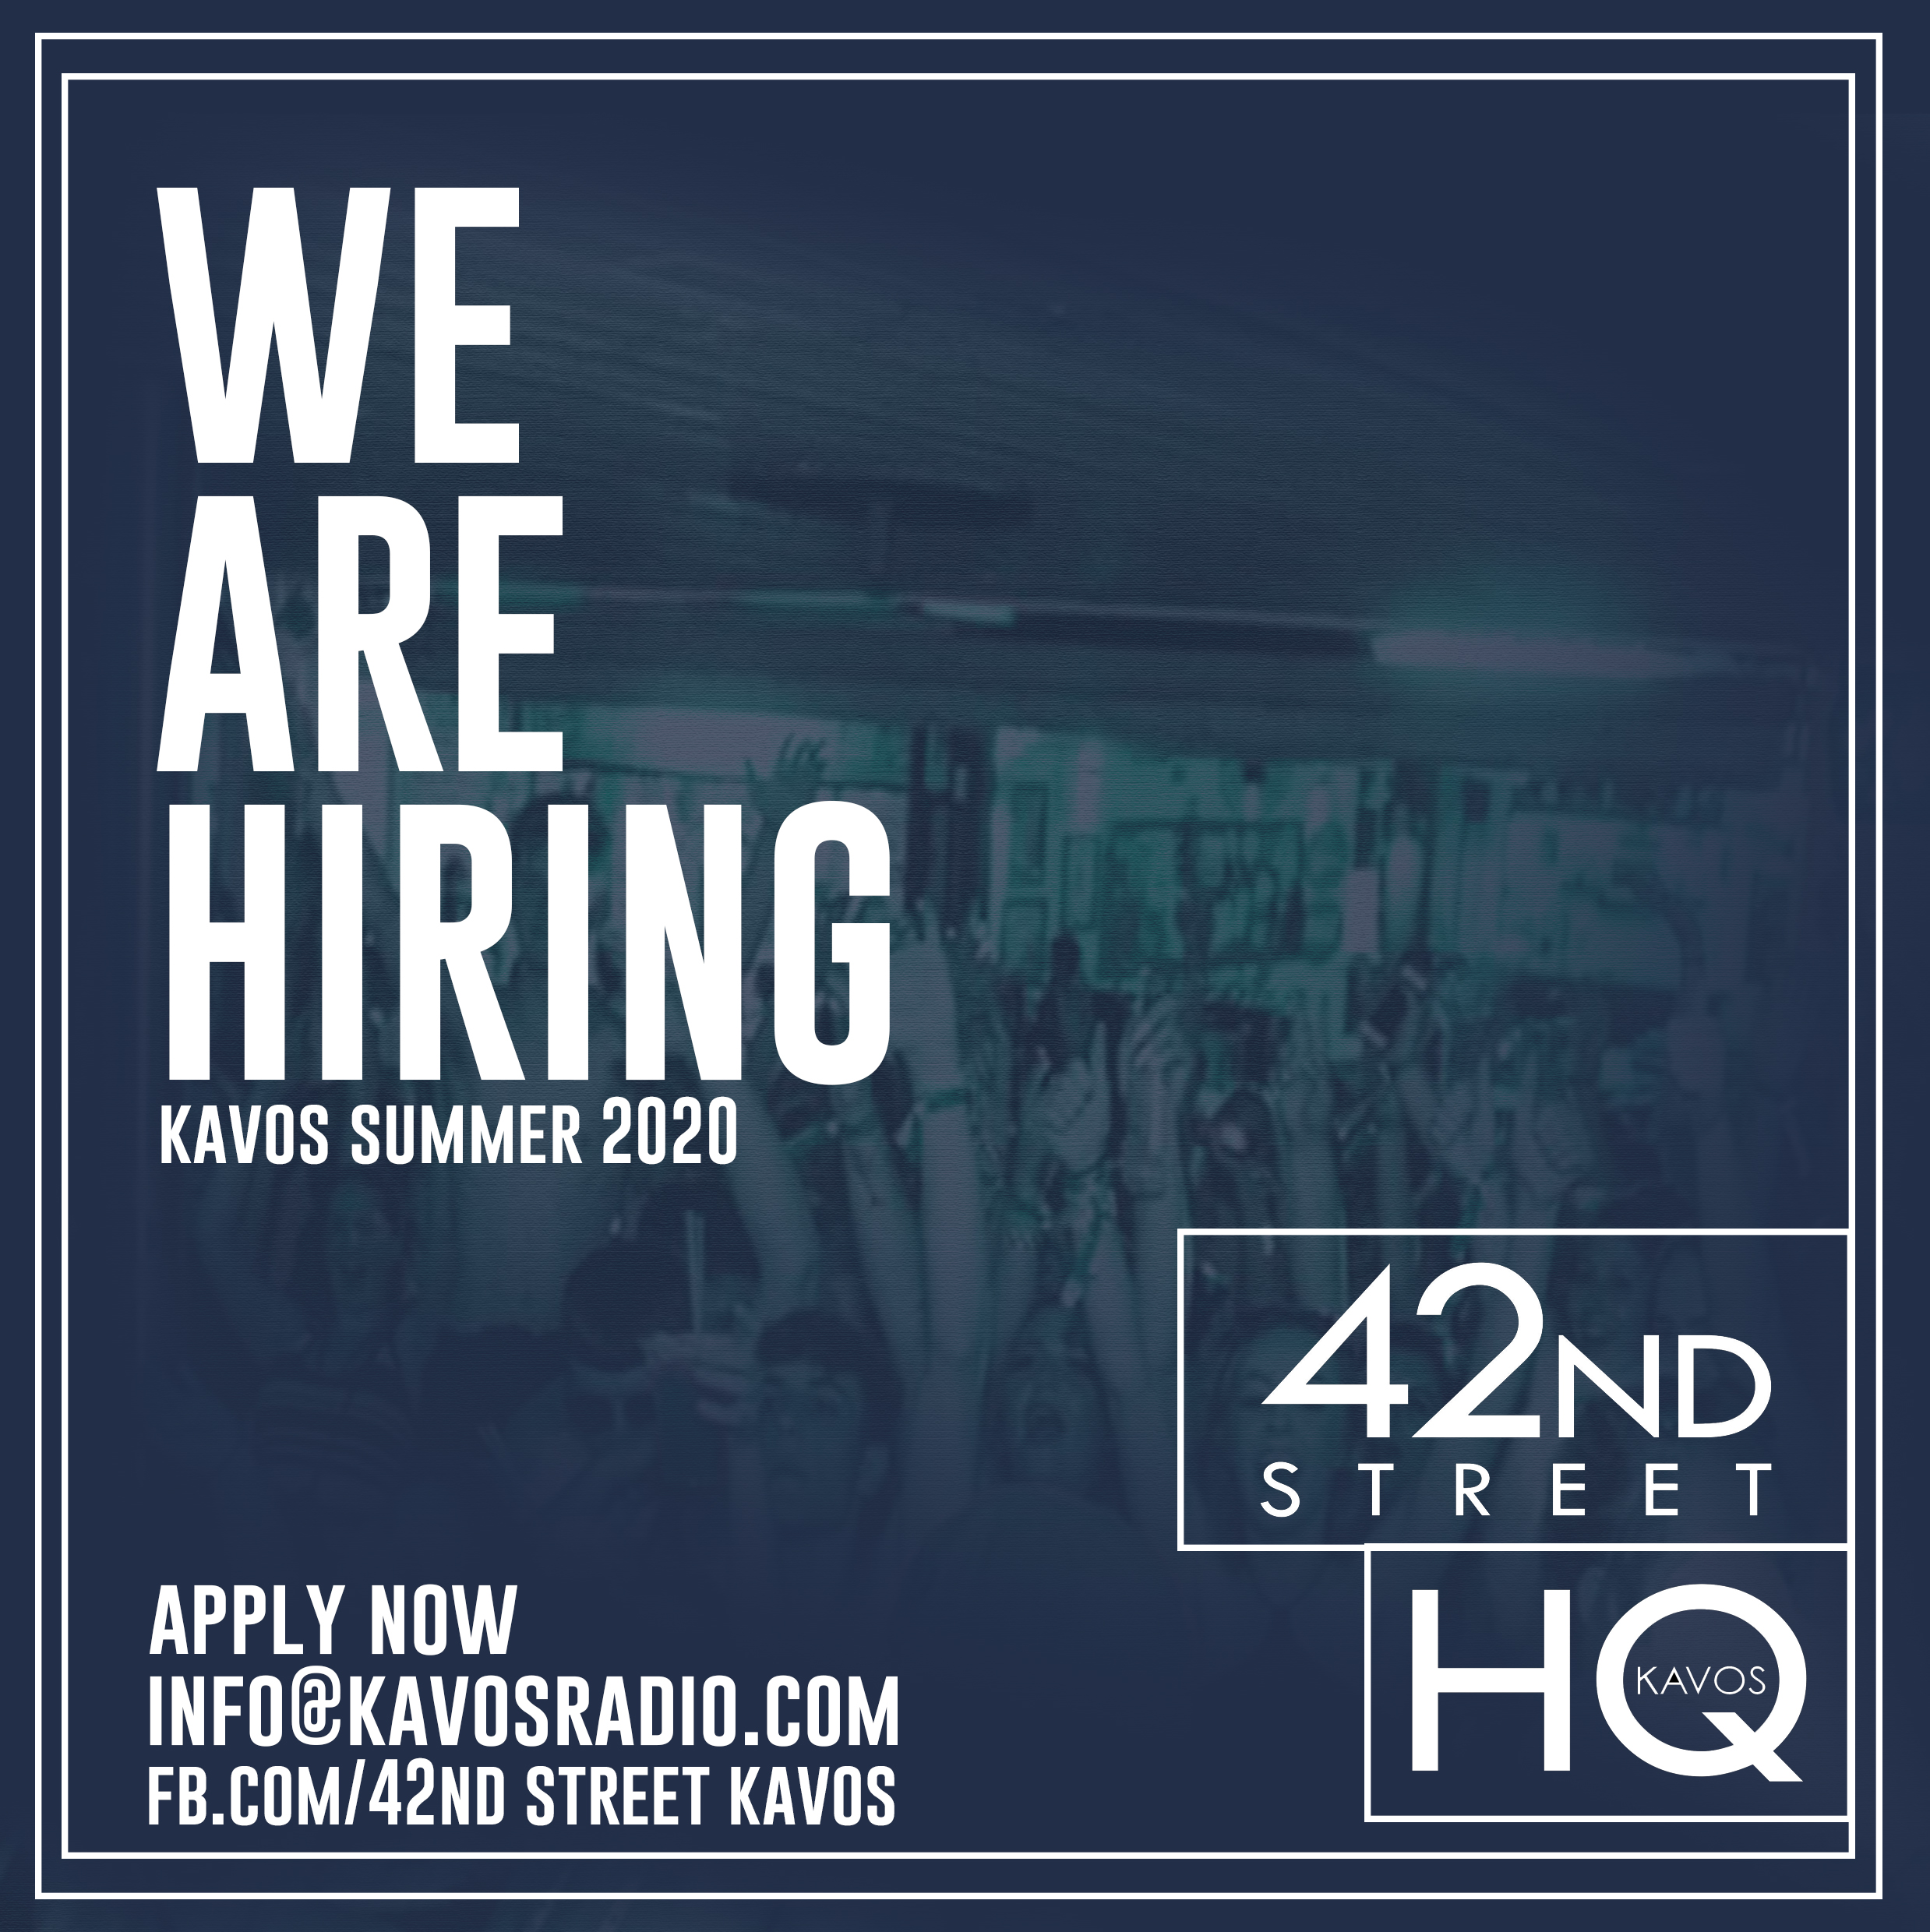 42nd Street & HQ Jobs